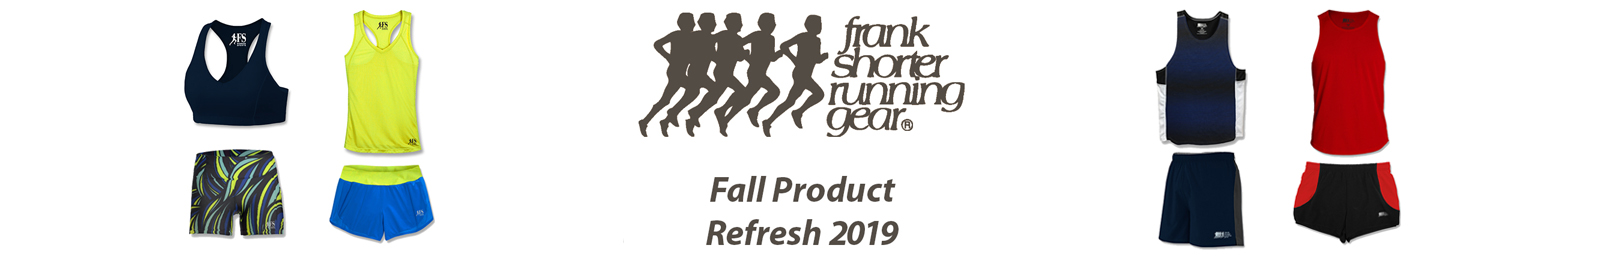 New Frank Shorter Fall 2019